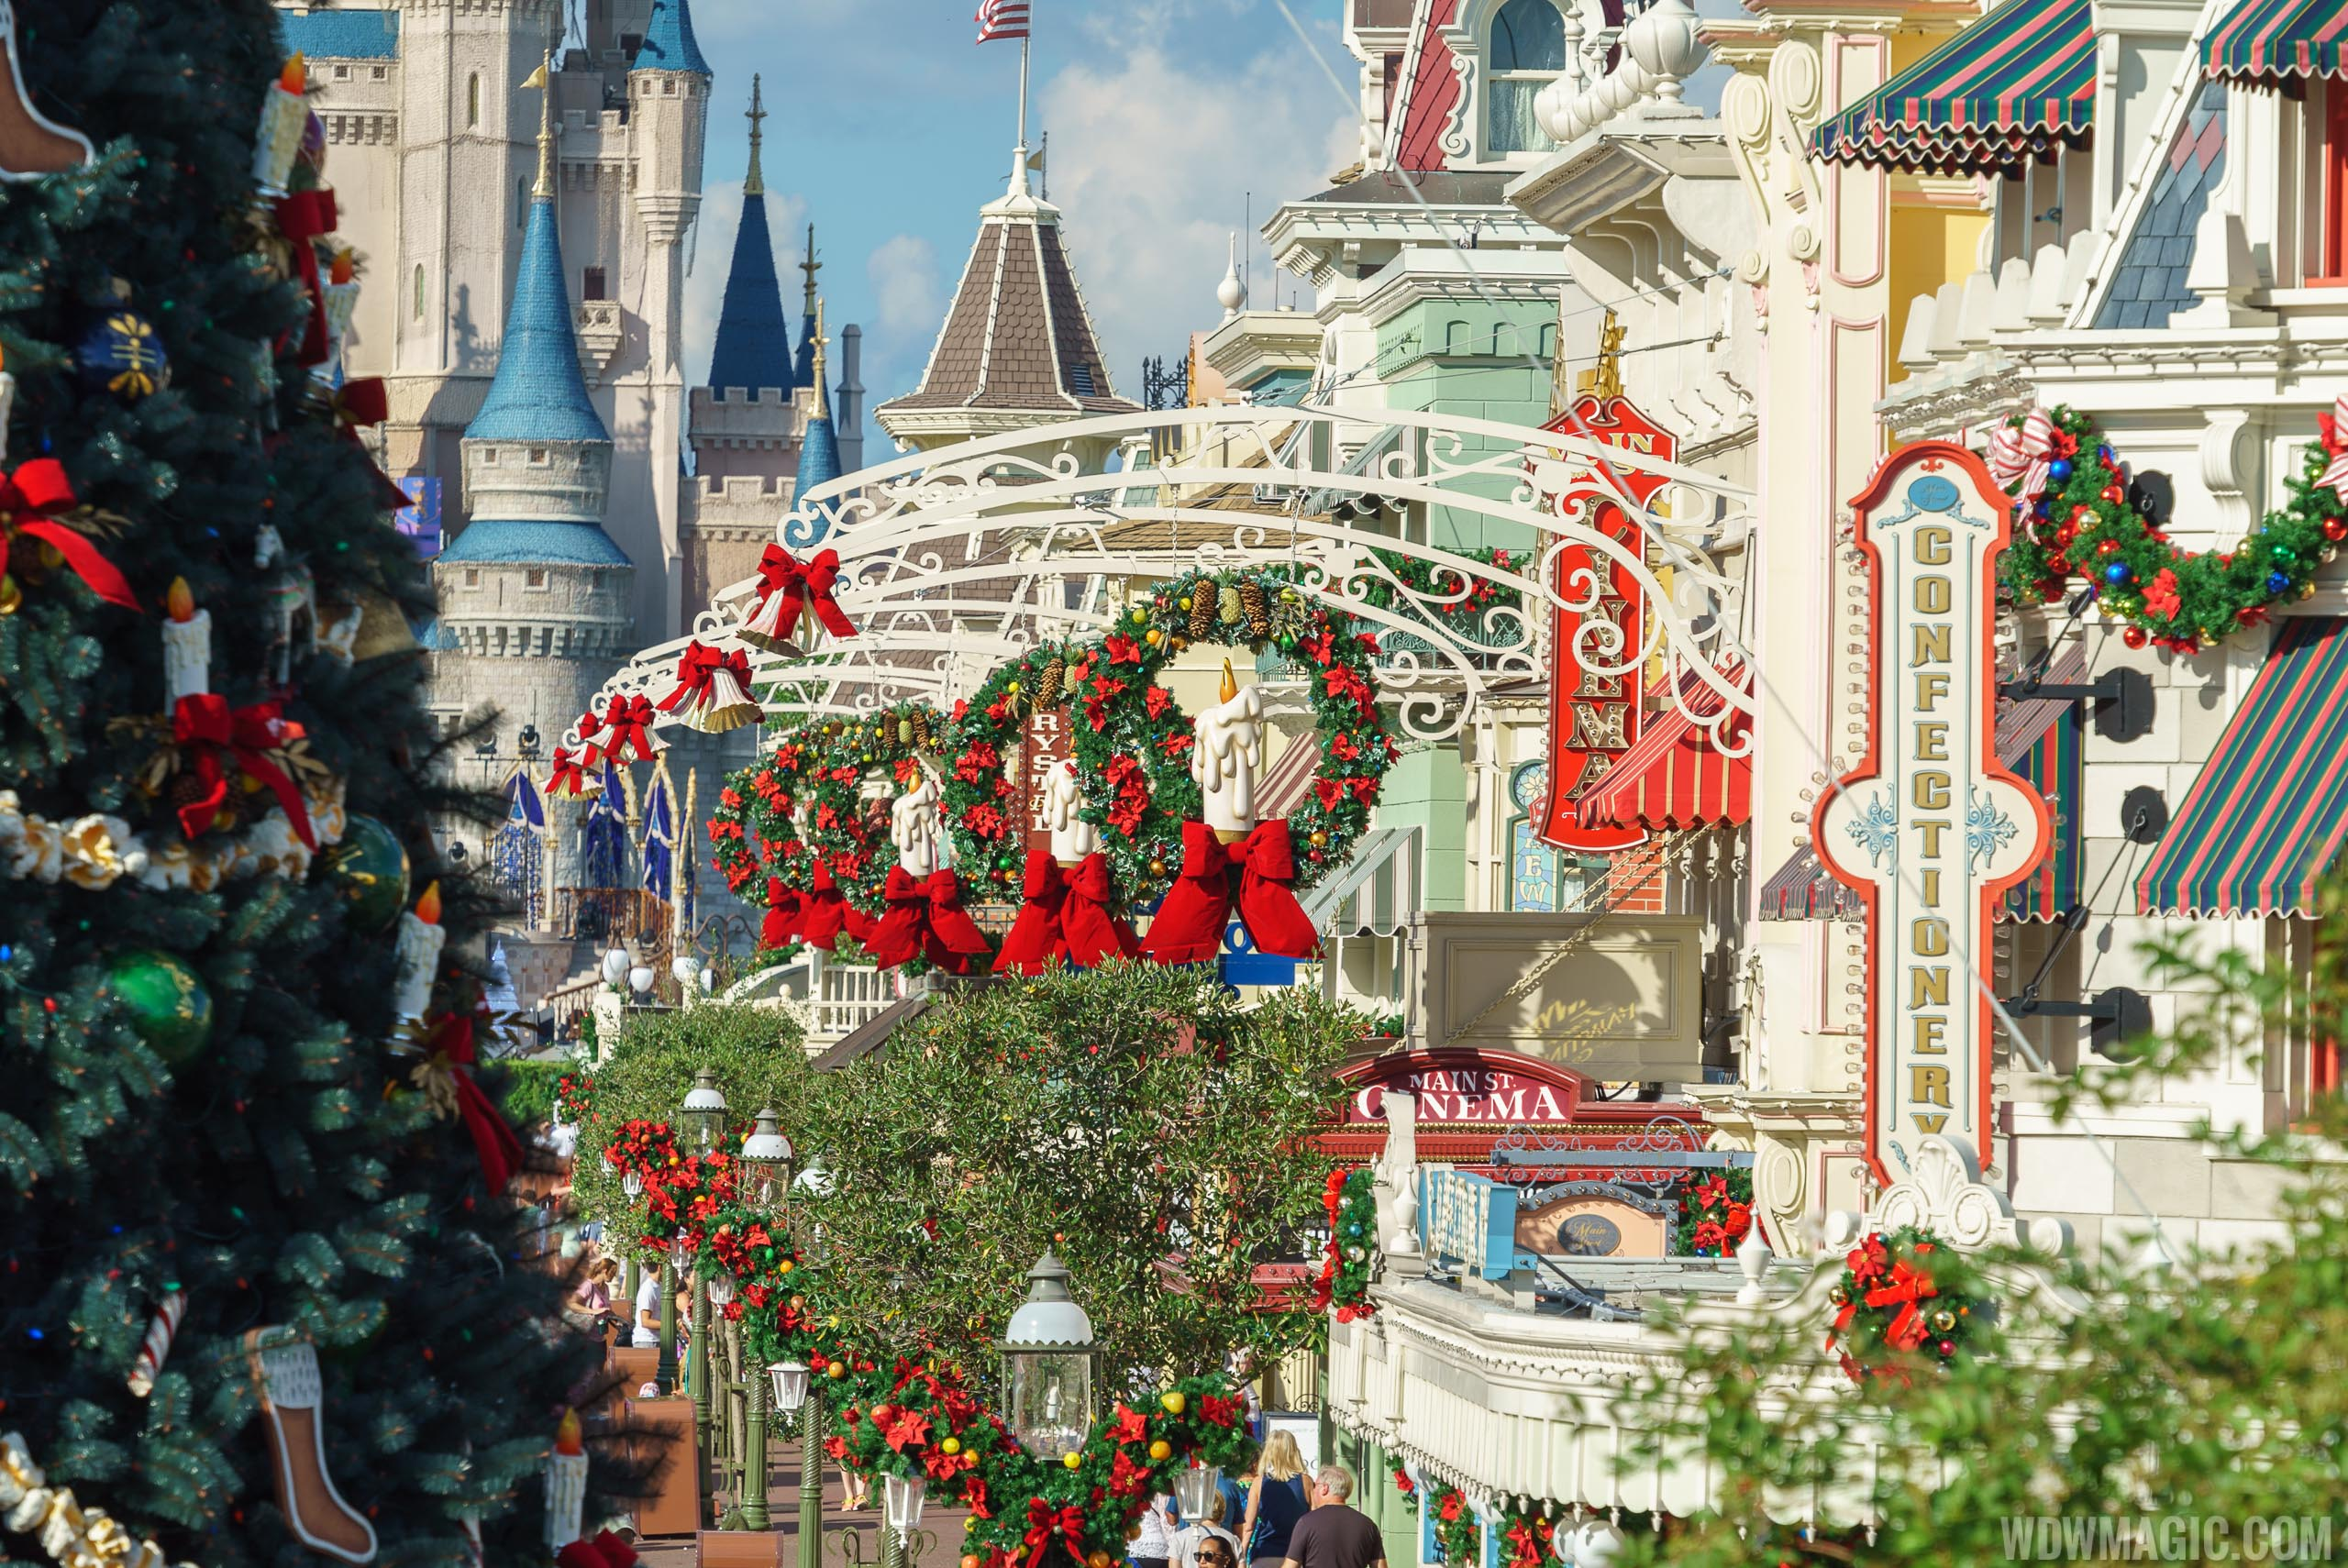 photos the magic kingdoms 2017 christmas holiday decorations - Disney World Christmas Decorations 2017